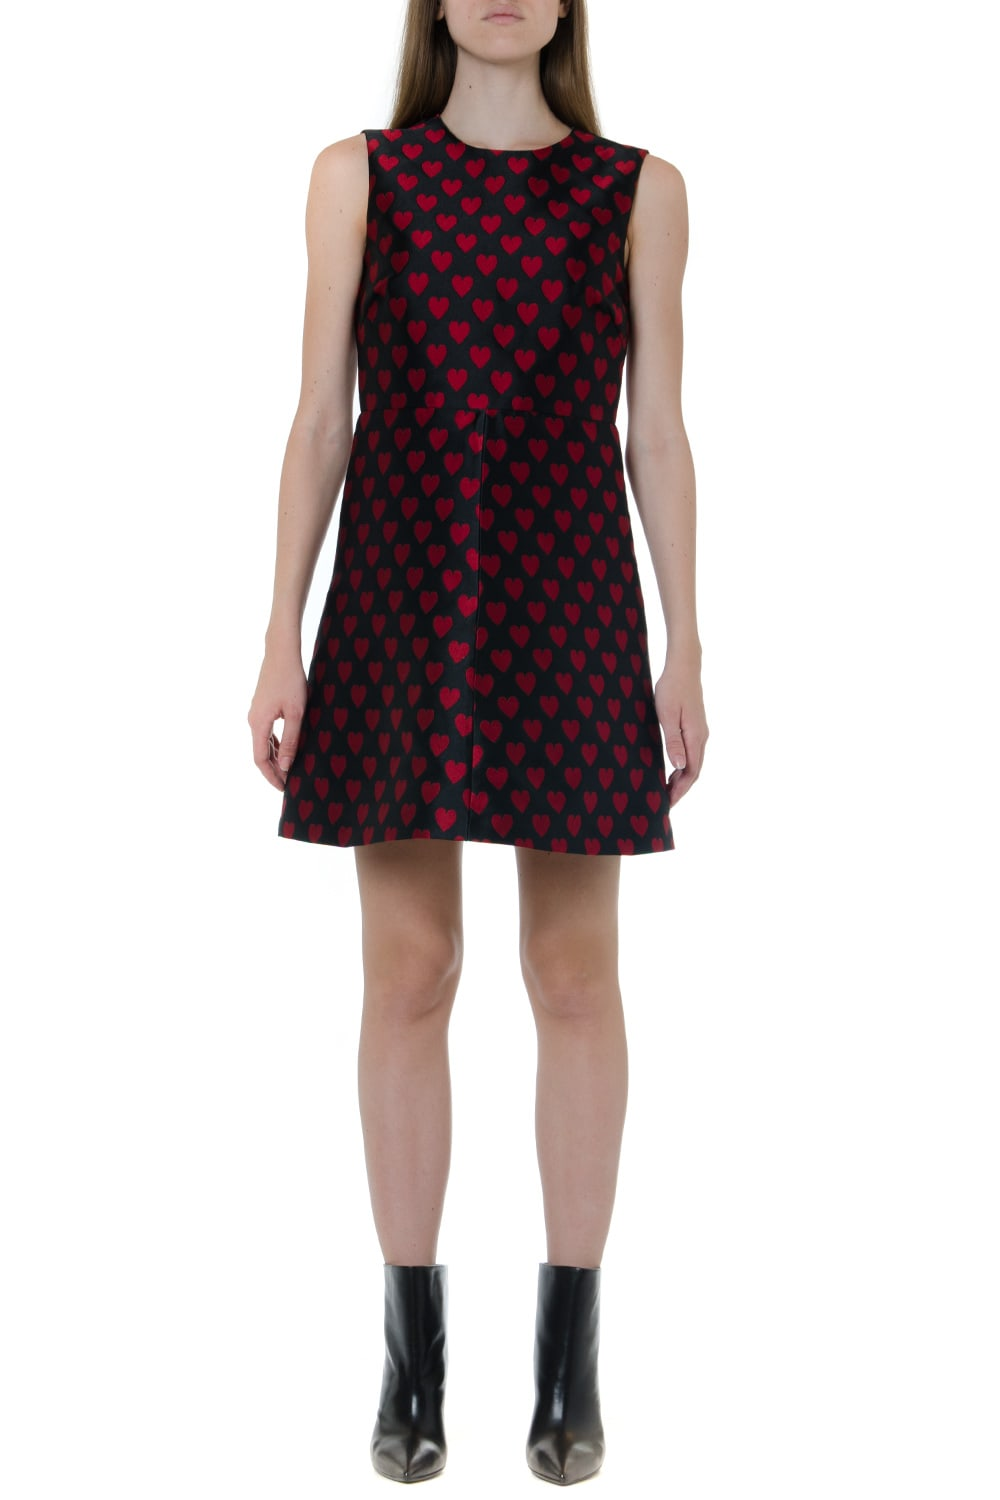 RED Valentino Heart Printed Brocade Dress